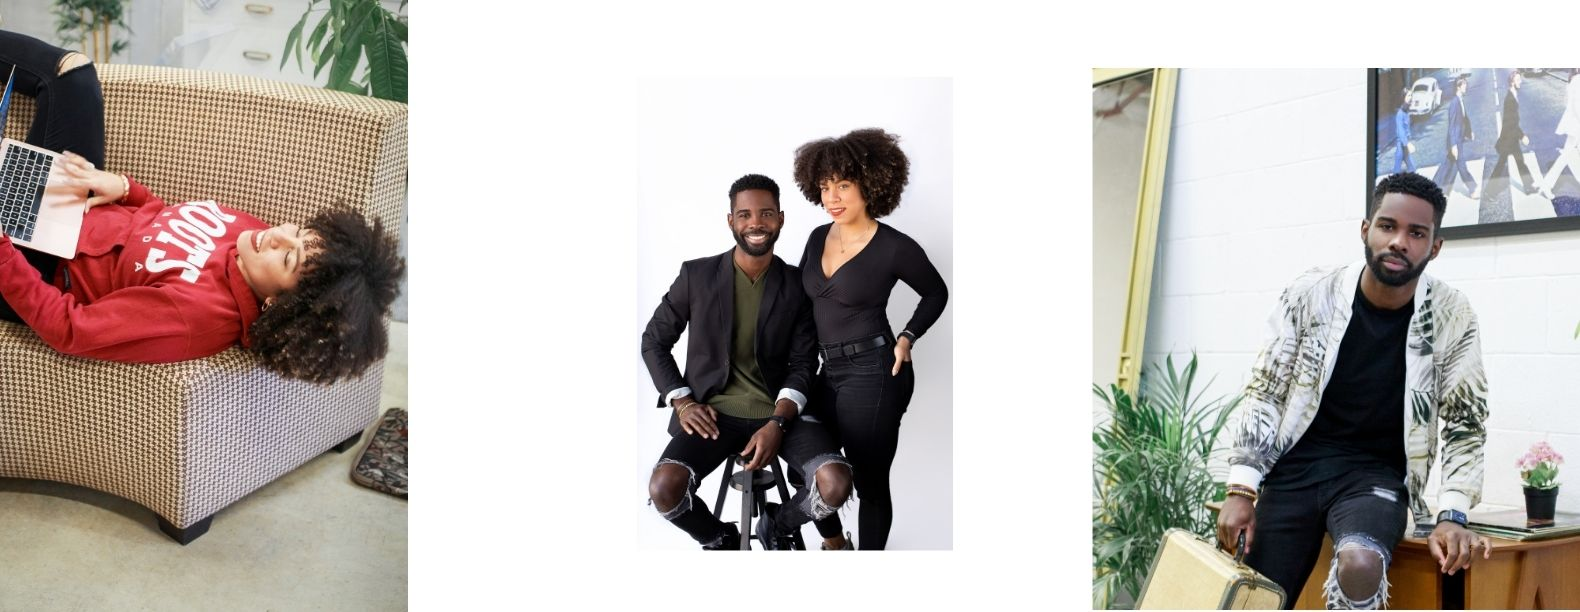 Natasha Sheppard and Sanjay Pinnock — Updated lifestyle photos